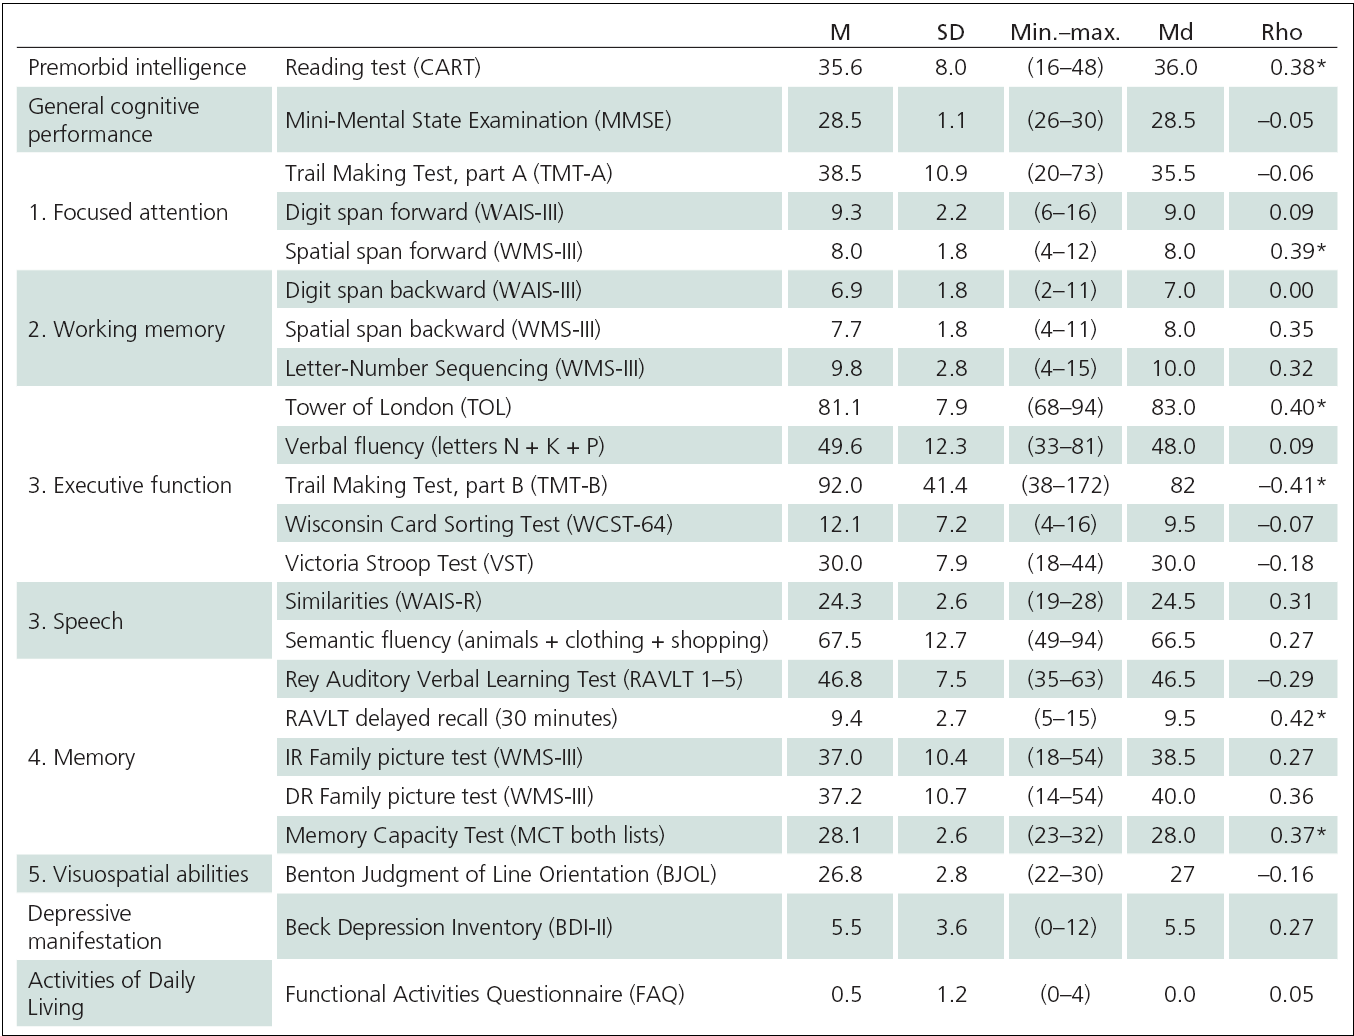 Performance characteristics of participants on neuropsychological battery and correlation with the MIST Summary score.